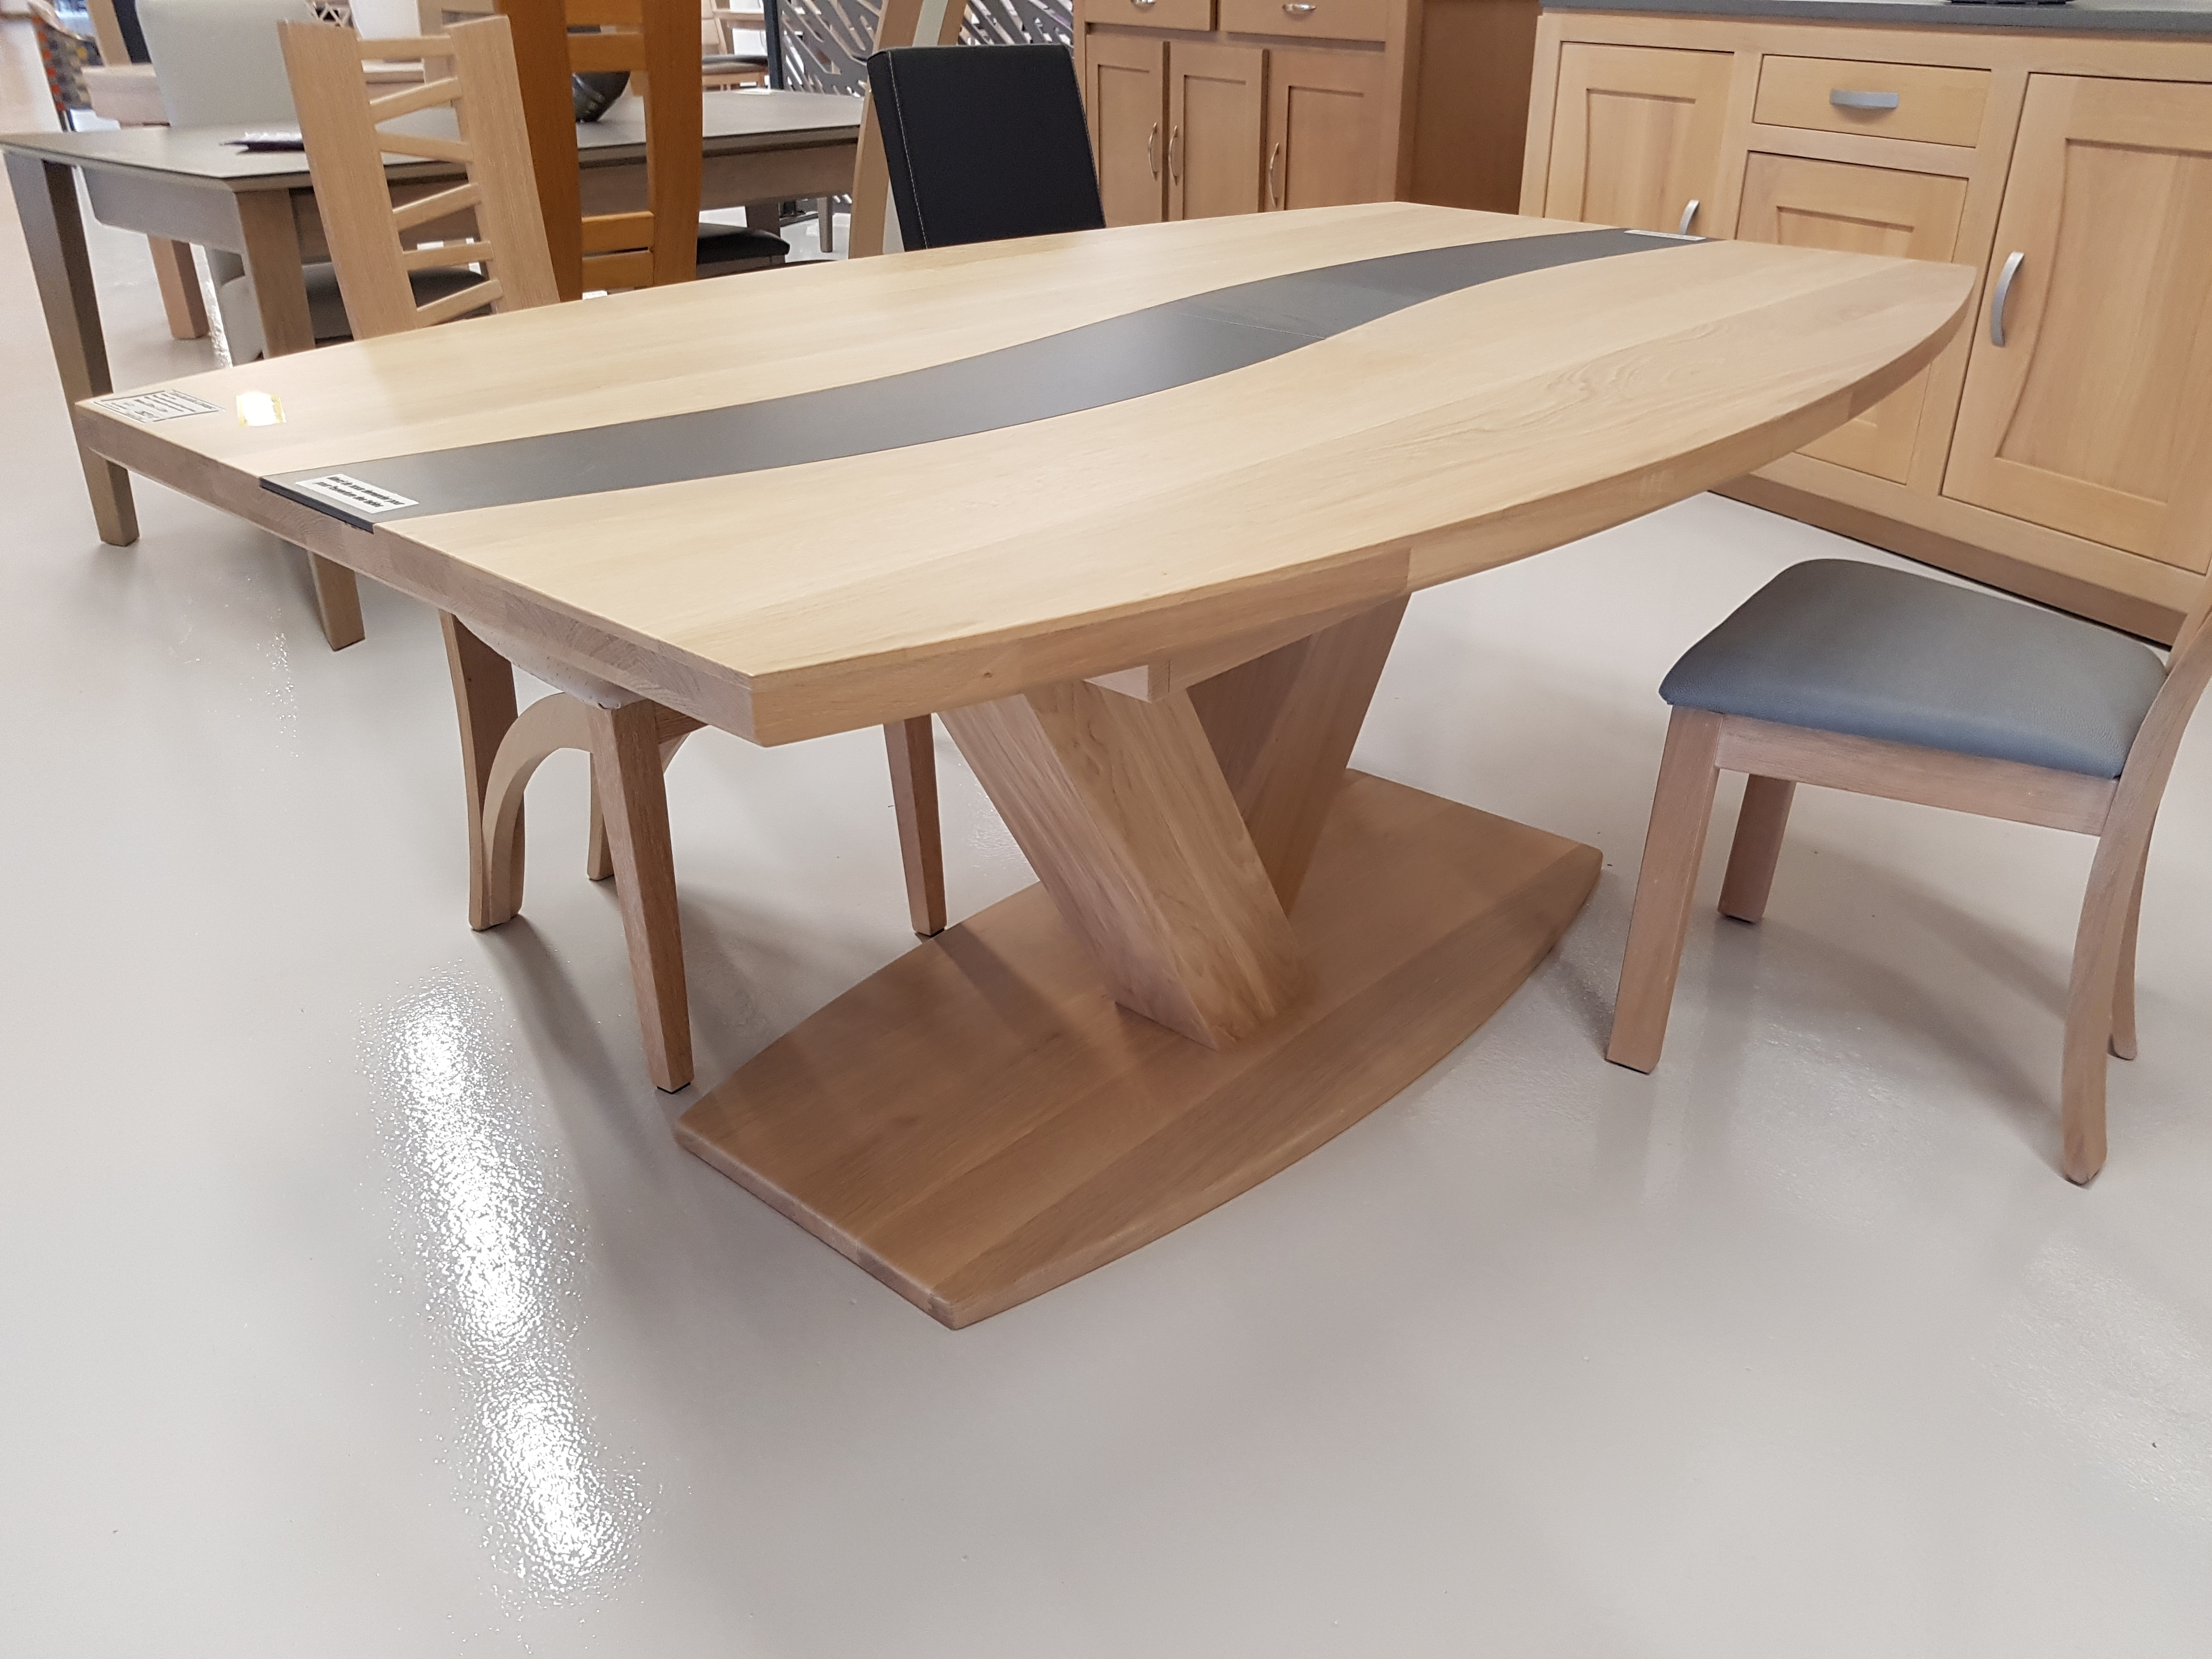 Table pieds central